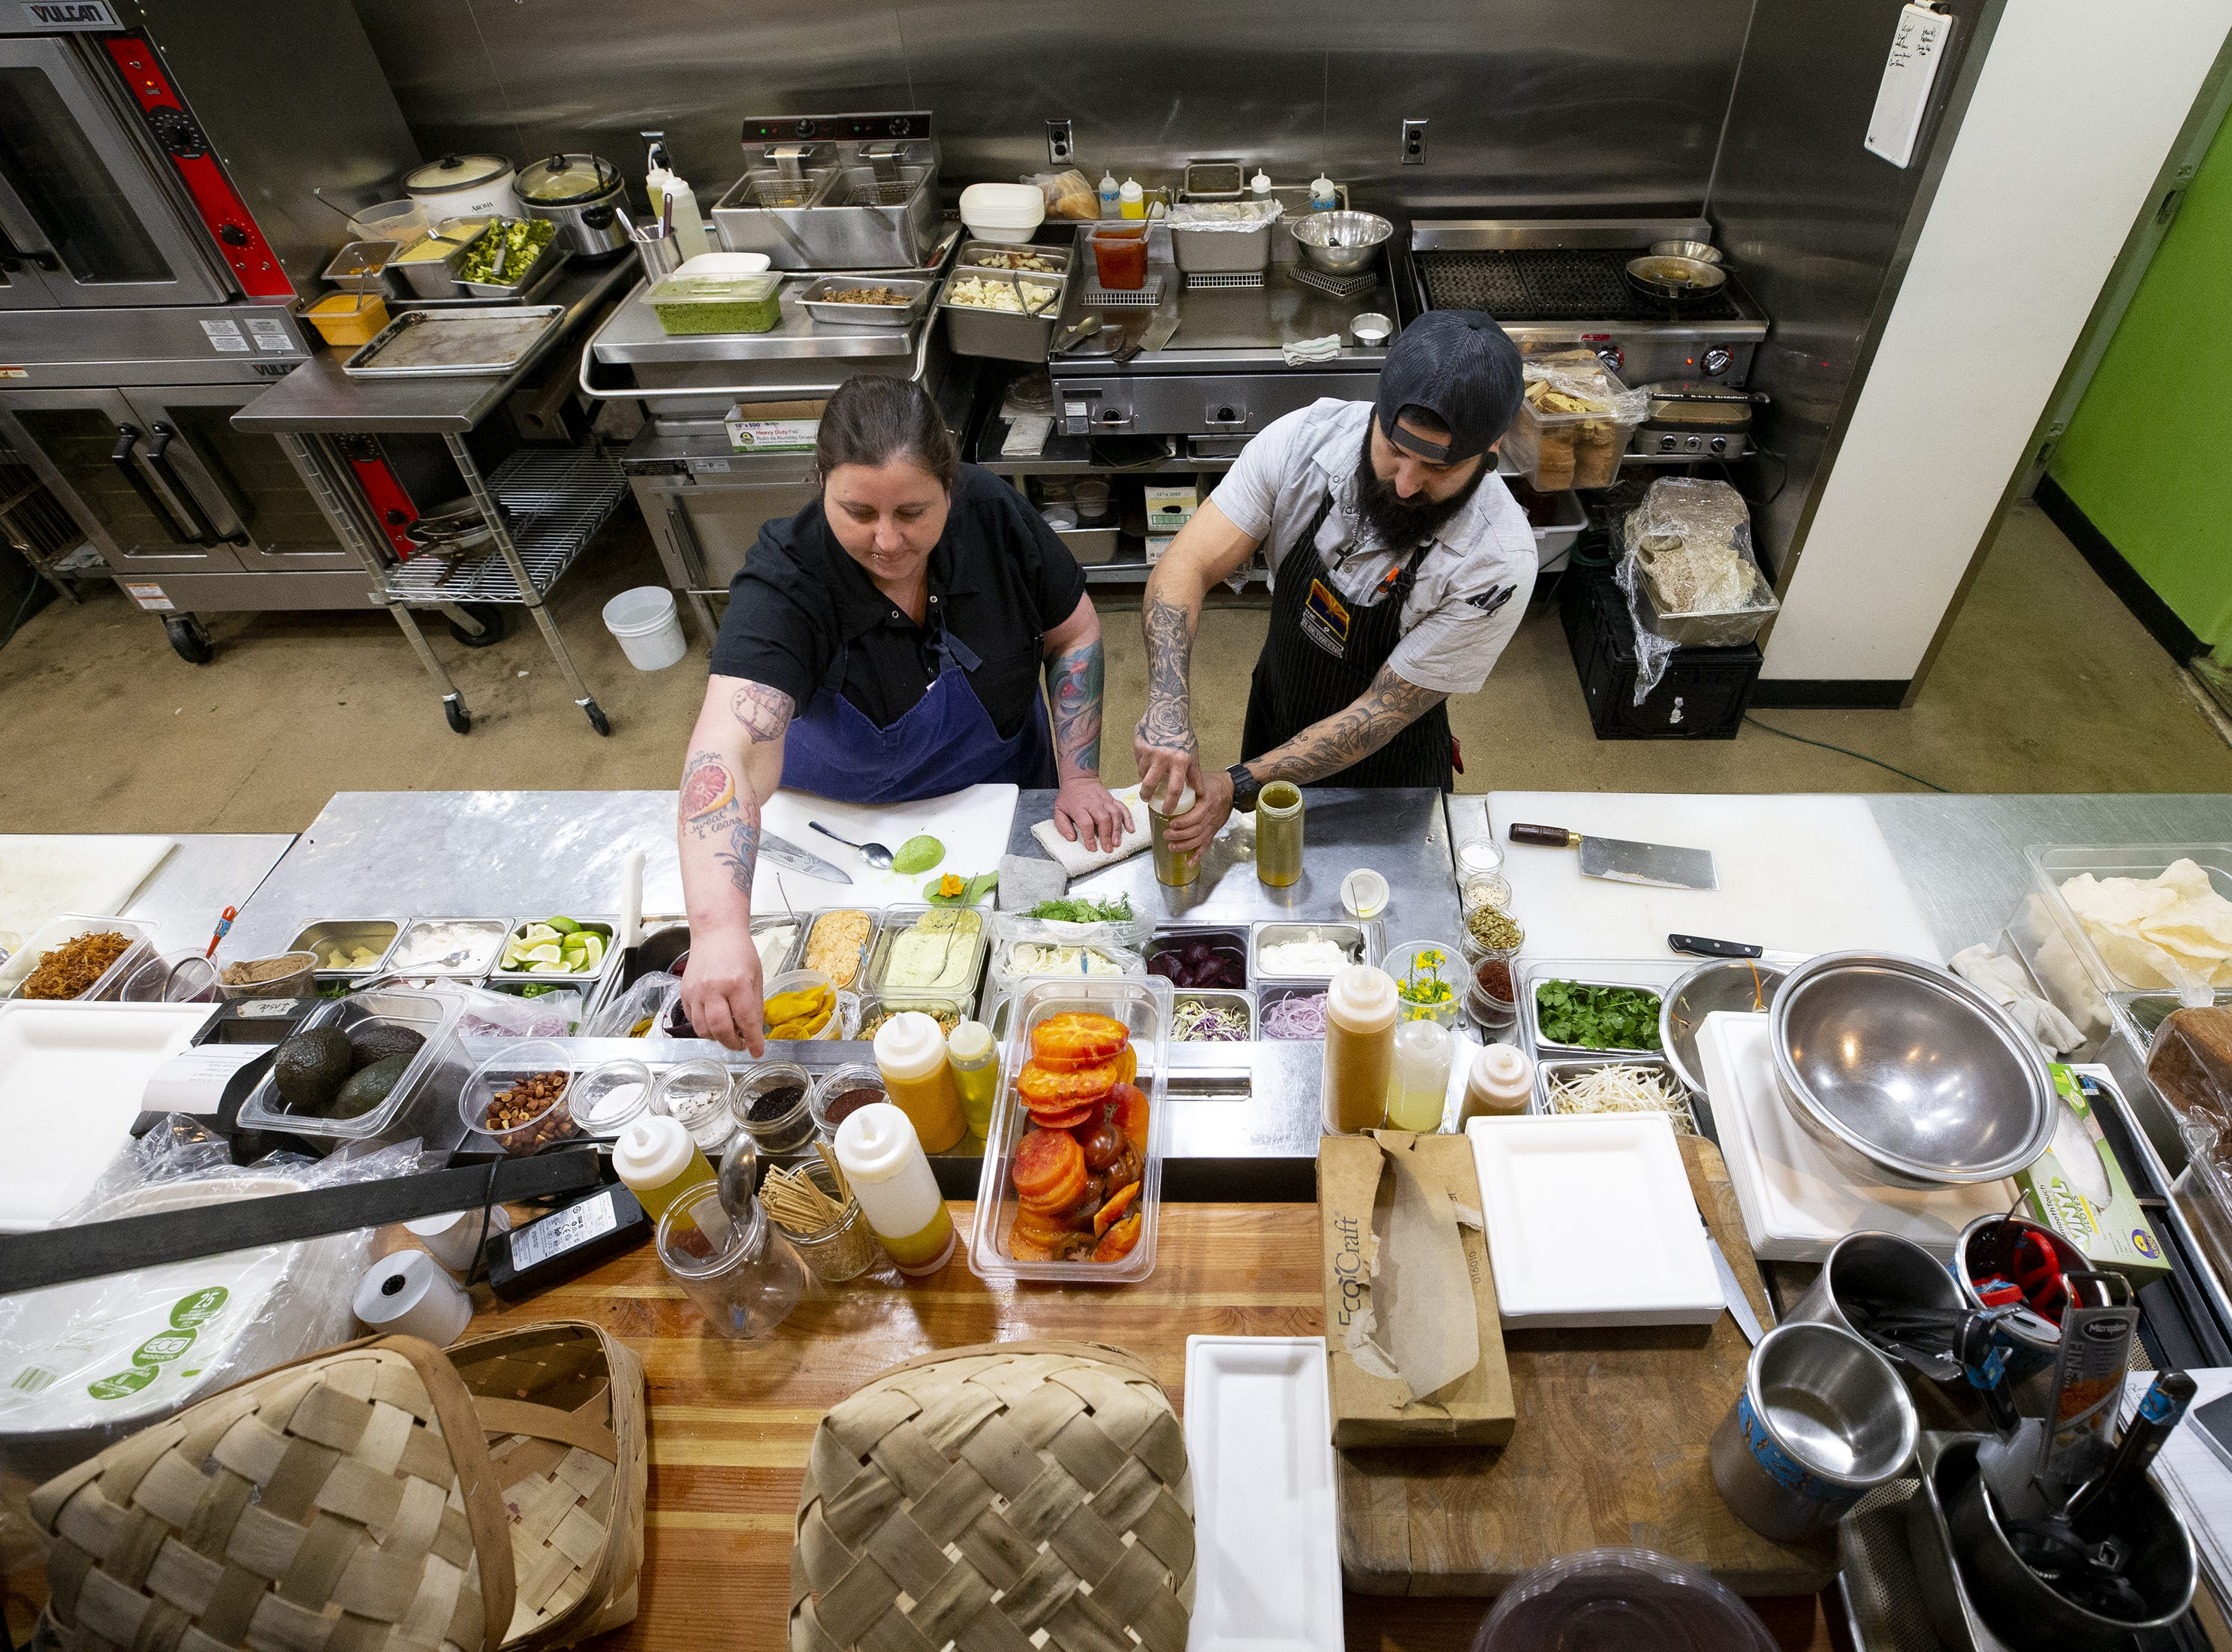 Singh Meadows chef Sacha Levine and cook Carlos Carbajal work in the Tempe kitchen.